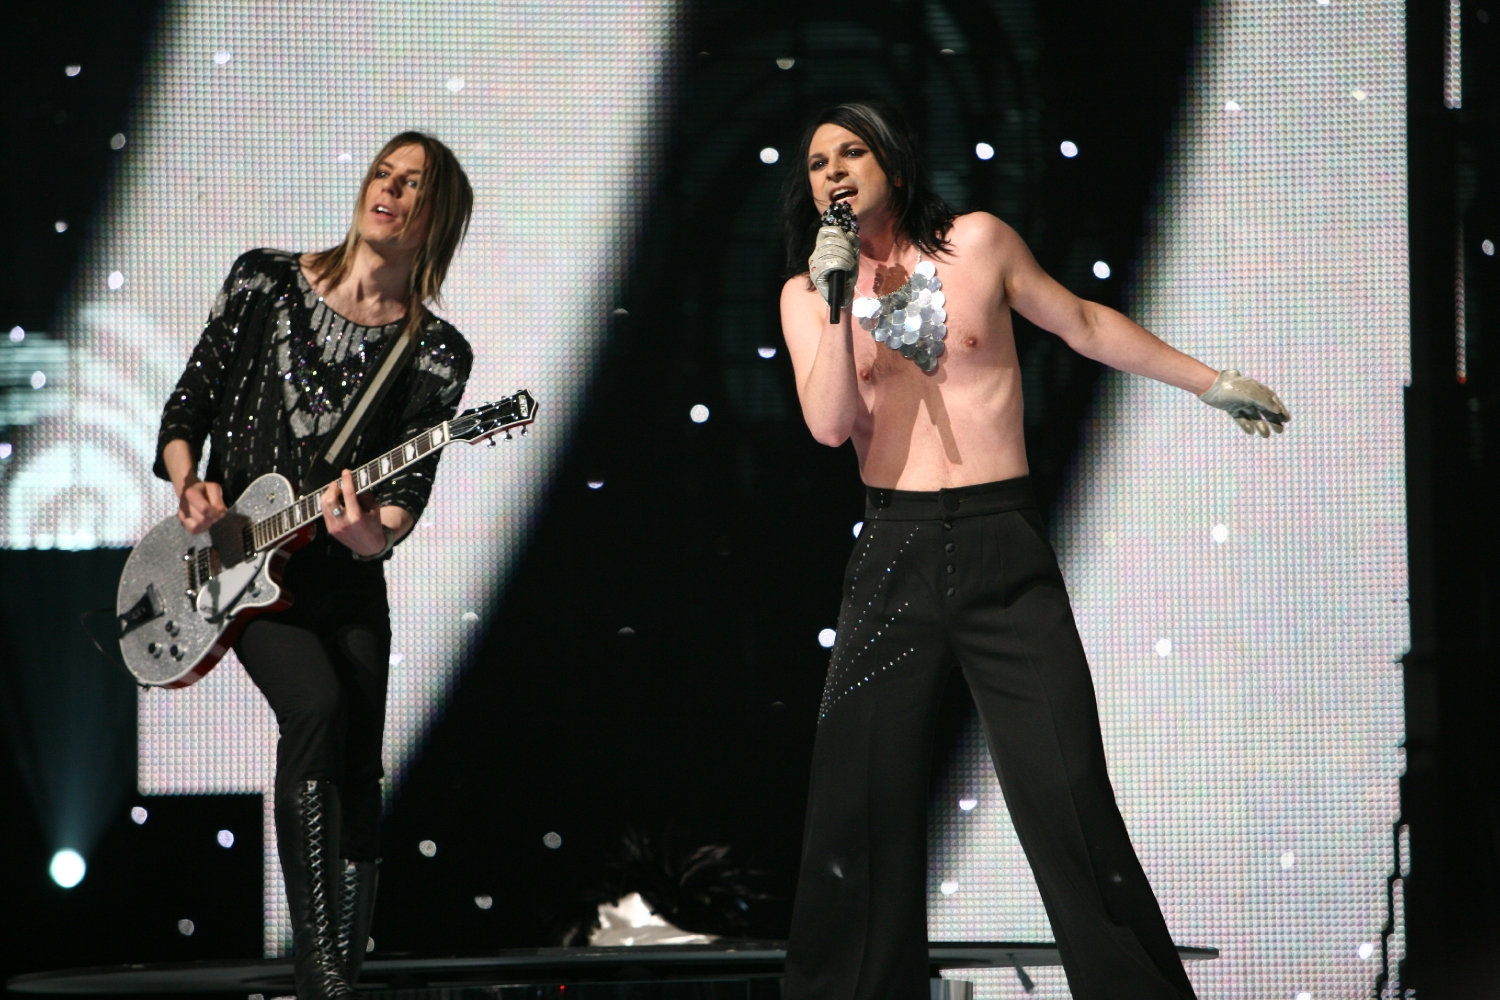 Eurovision Flashback: Remember the Swedish Scissor Sisters?